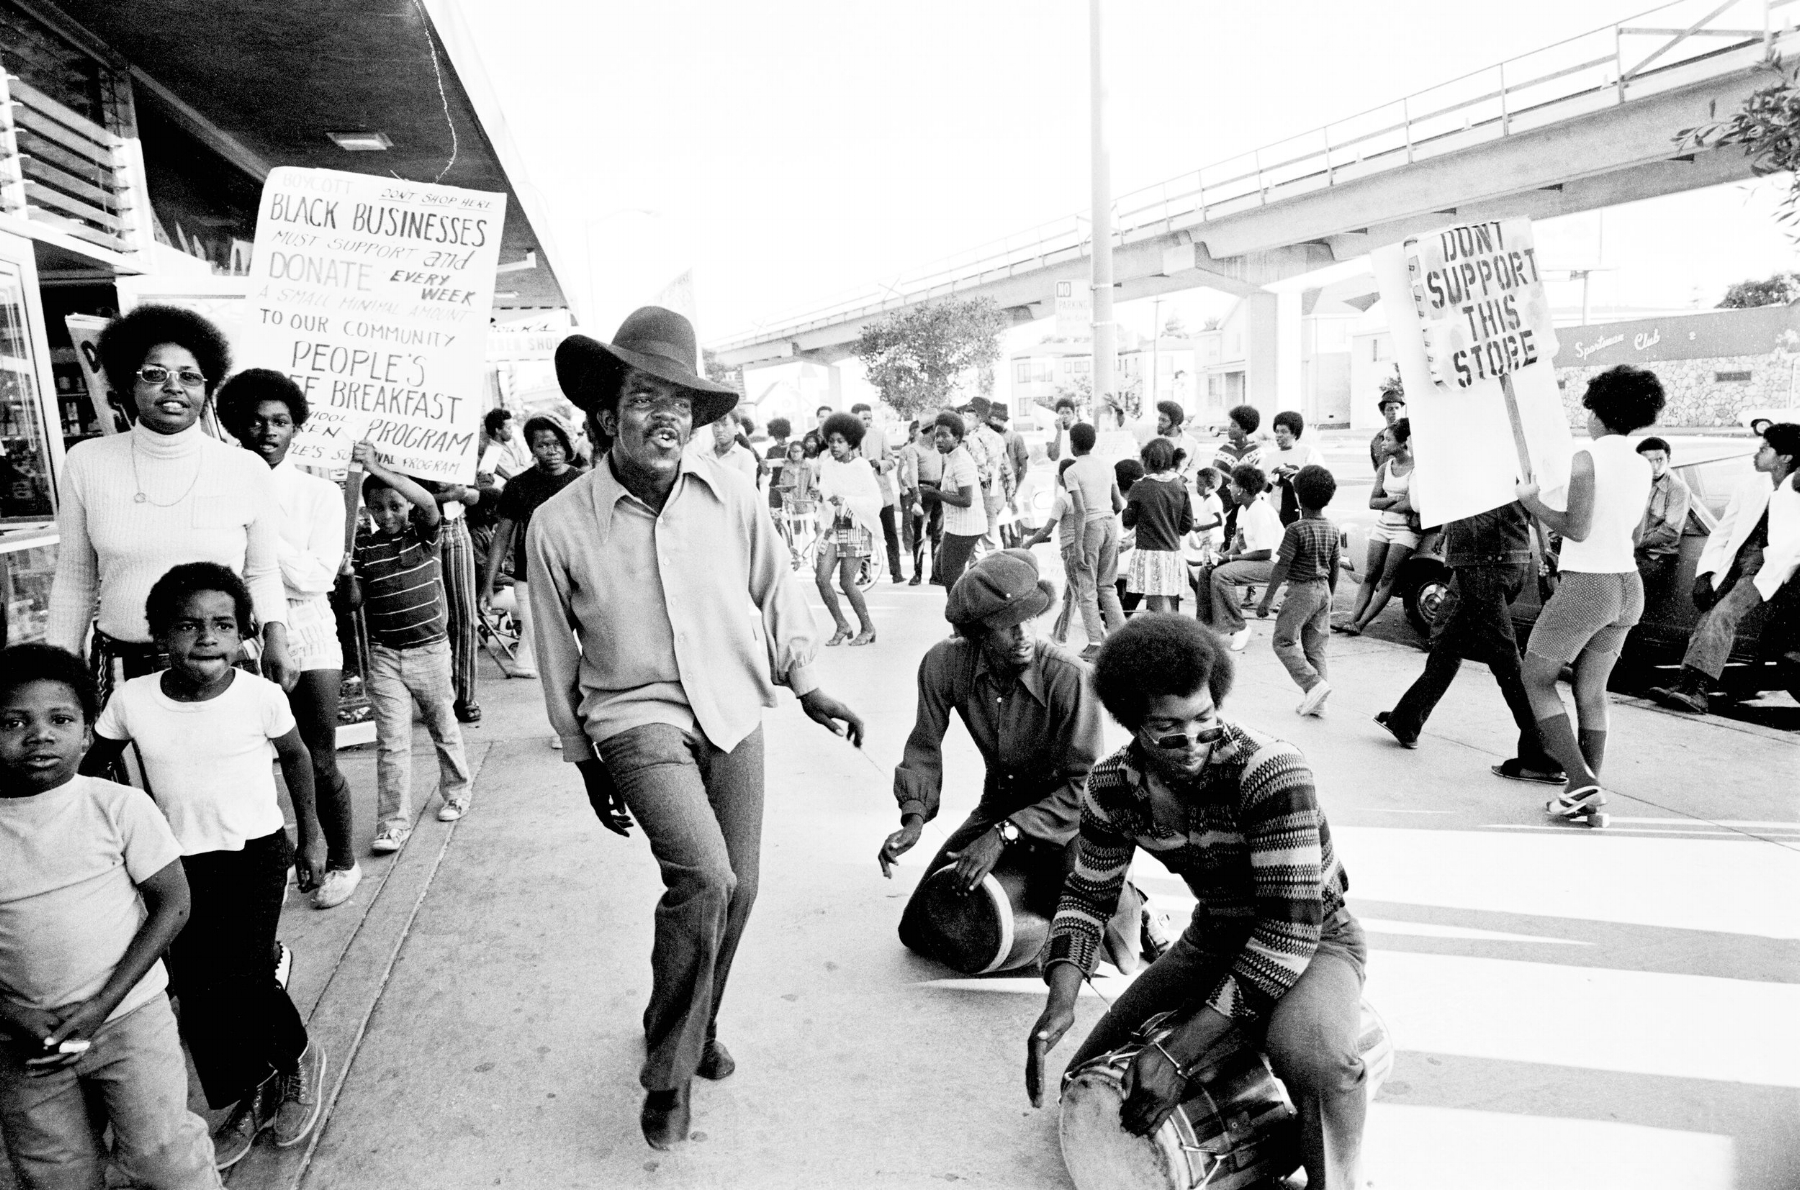 Image Above:The Lumpen, the Panthers' singing group, performs at the boycott of Bill's Liquors, Oakland, 1971. Clark Bailey, known as Santa Rita, is dancing. Michael Torrence (front) and James Mott (back) are drumming.All images: Stephen Shames, Courtesy of Steven Kasher Gallery